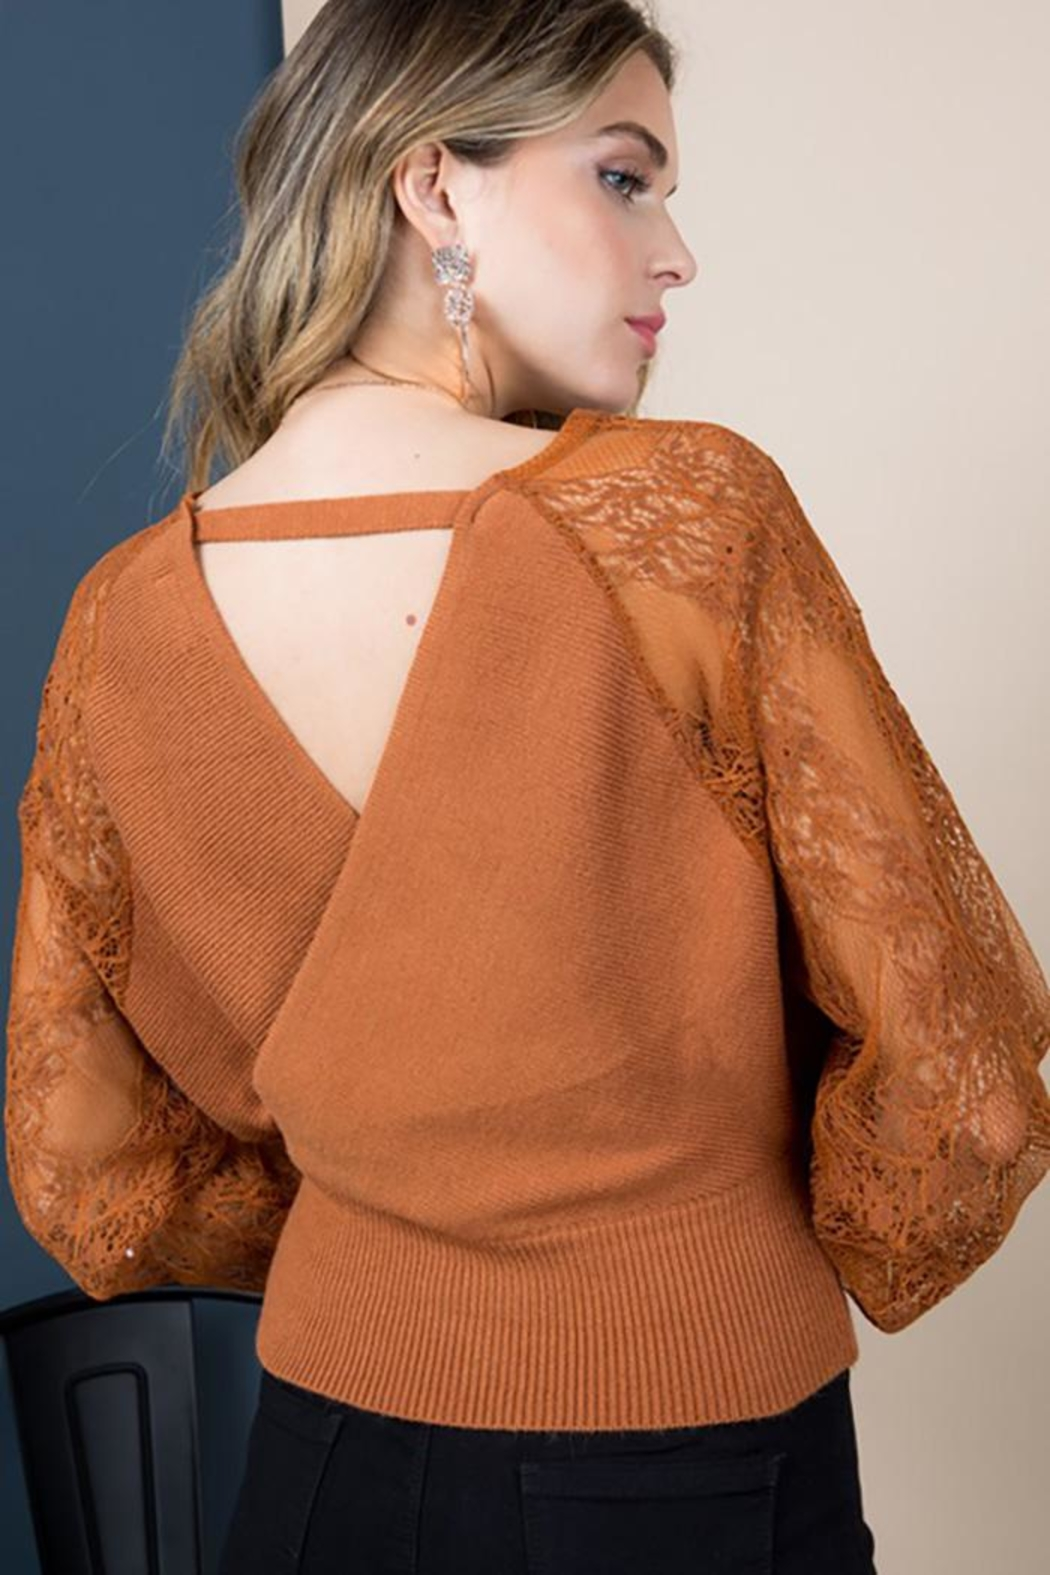 Blue B Floral-Lace Sleeves Sweater Top - Front Full Image